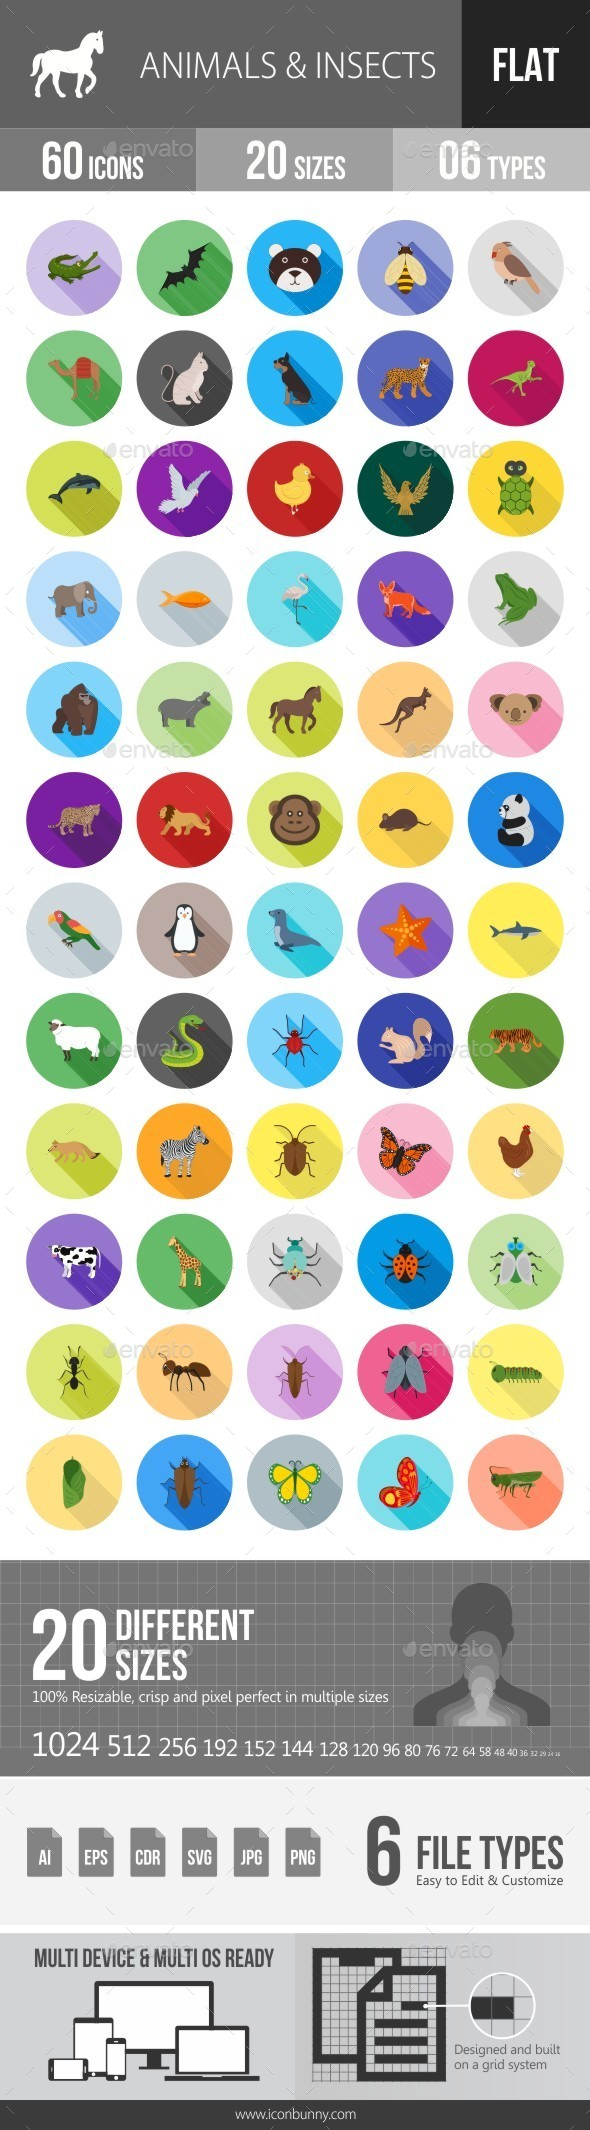 Animals & Insects Flat Shadowed Icons - Icons